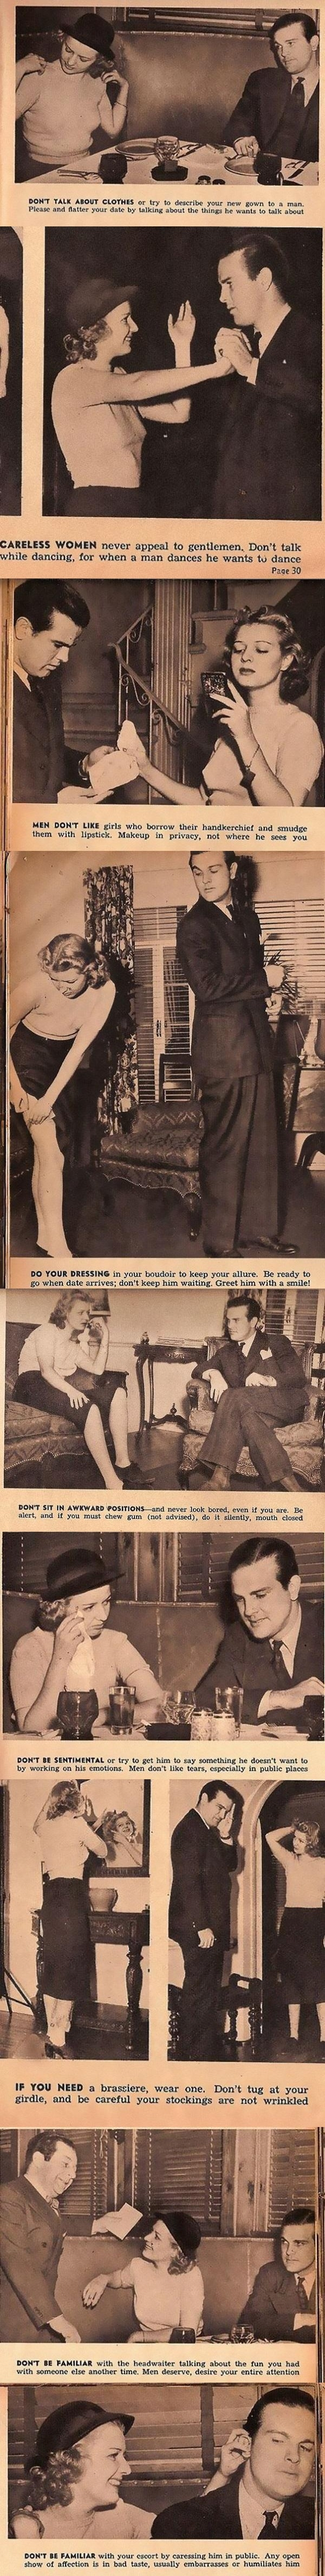 1930's dating advice